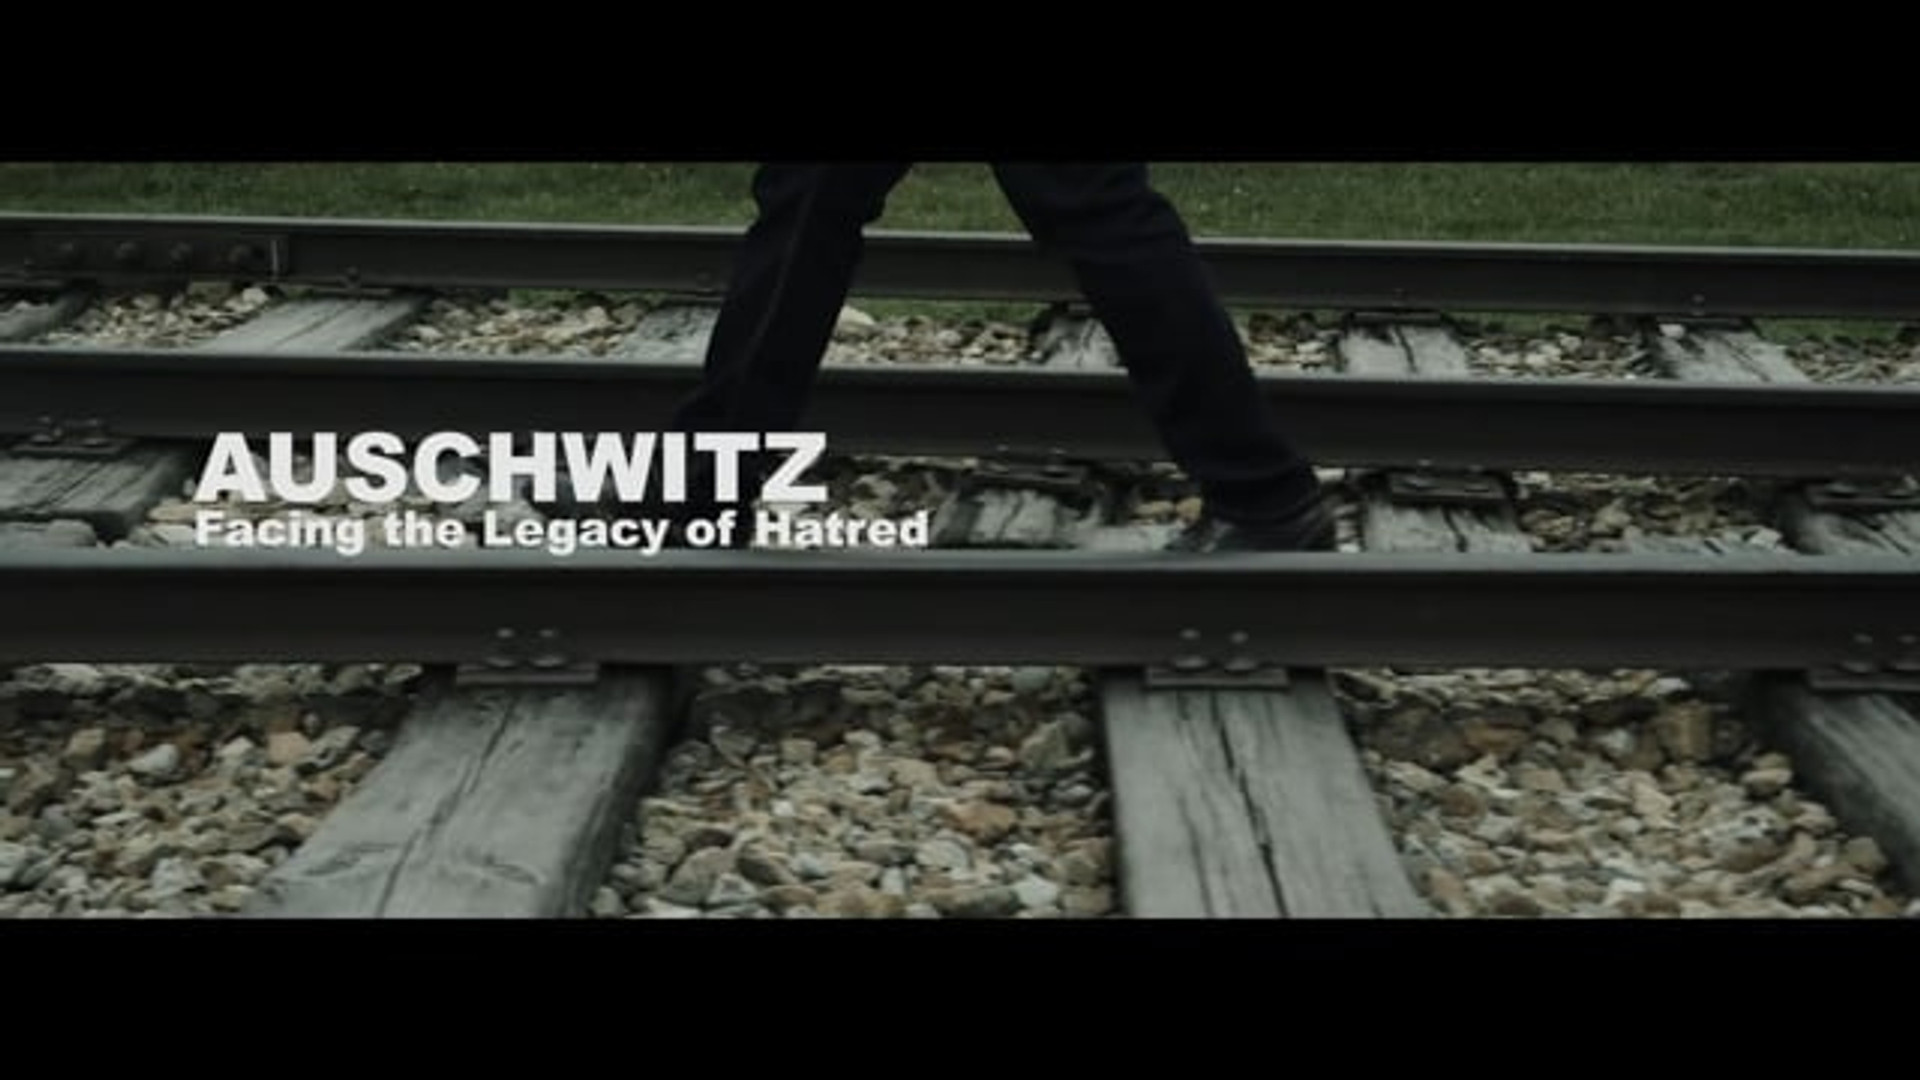 Auschwitz, Facing the Legacy of Hatred